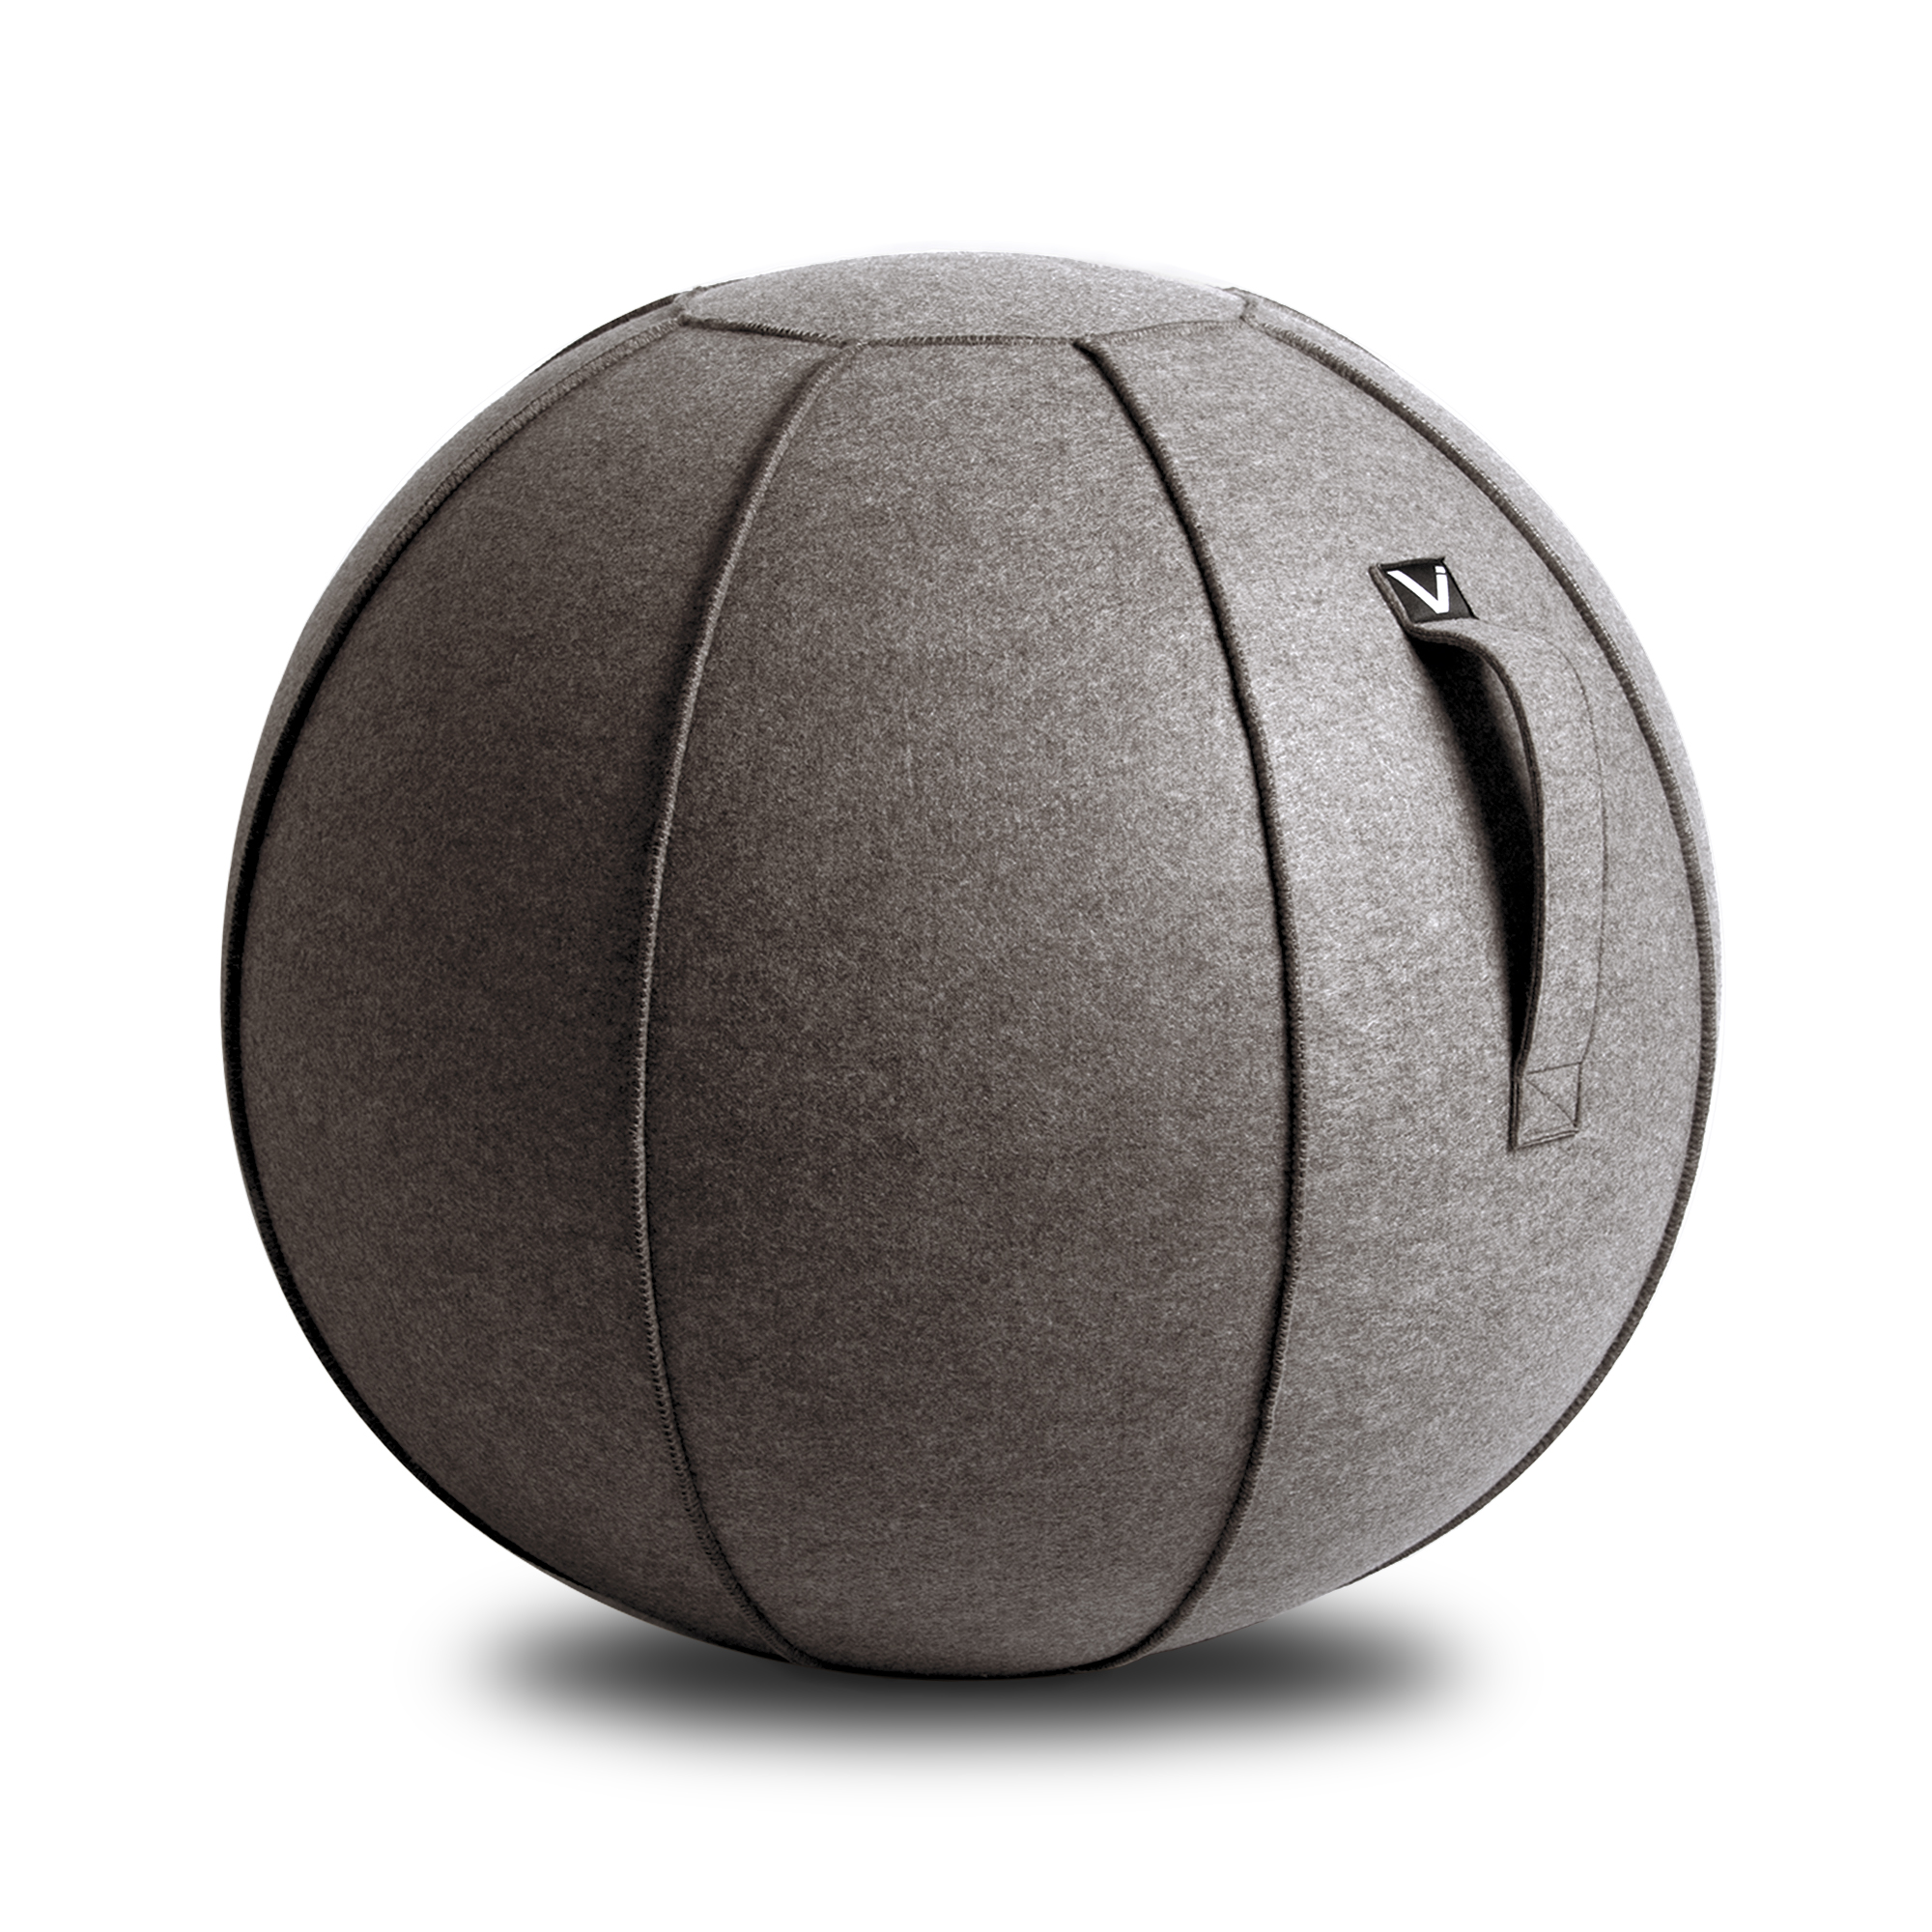 Ball Chair Reviews Luno Standard Classic Series Felt Sitting Ball Chair